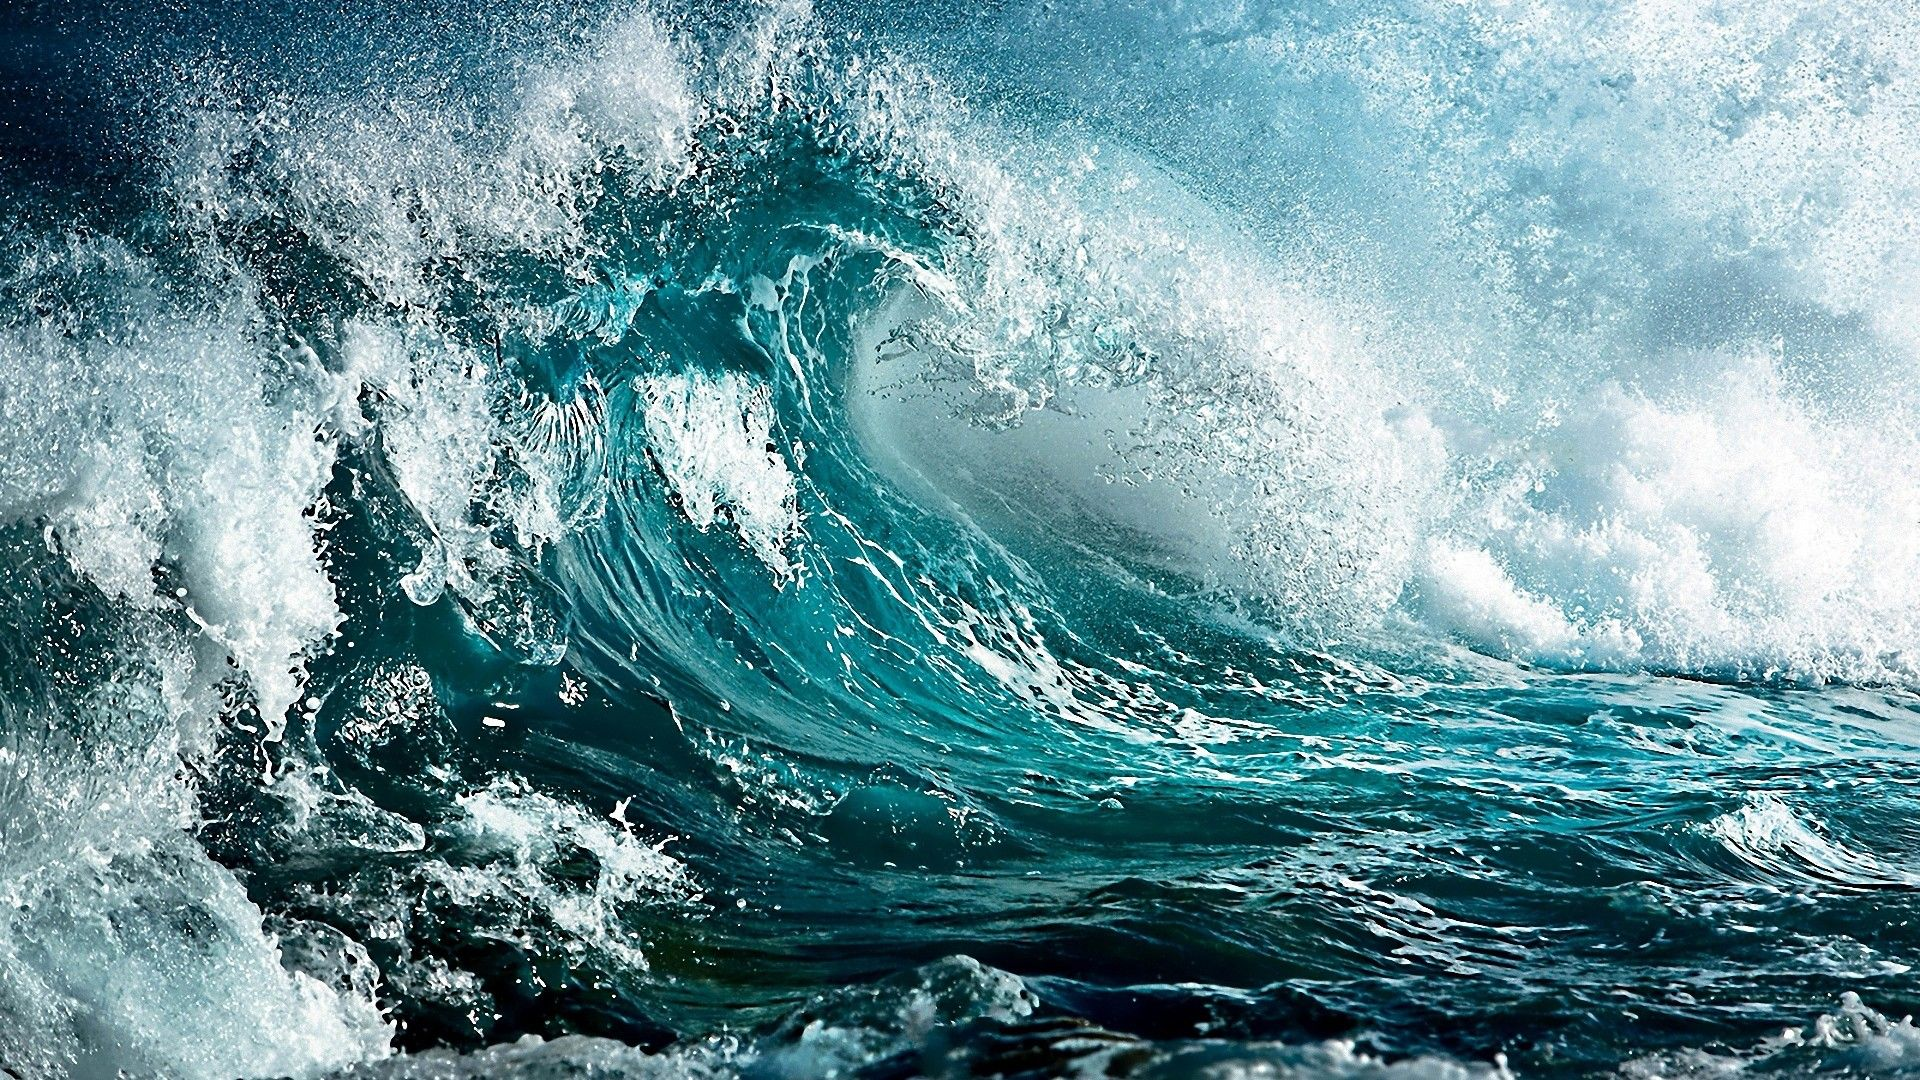 Beautiful Ocean wallpaper theme